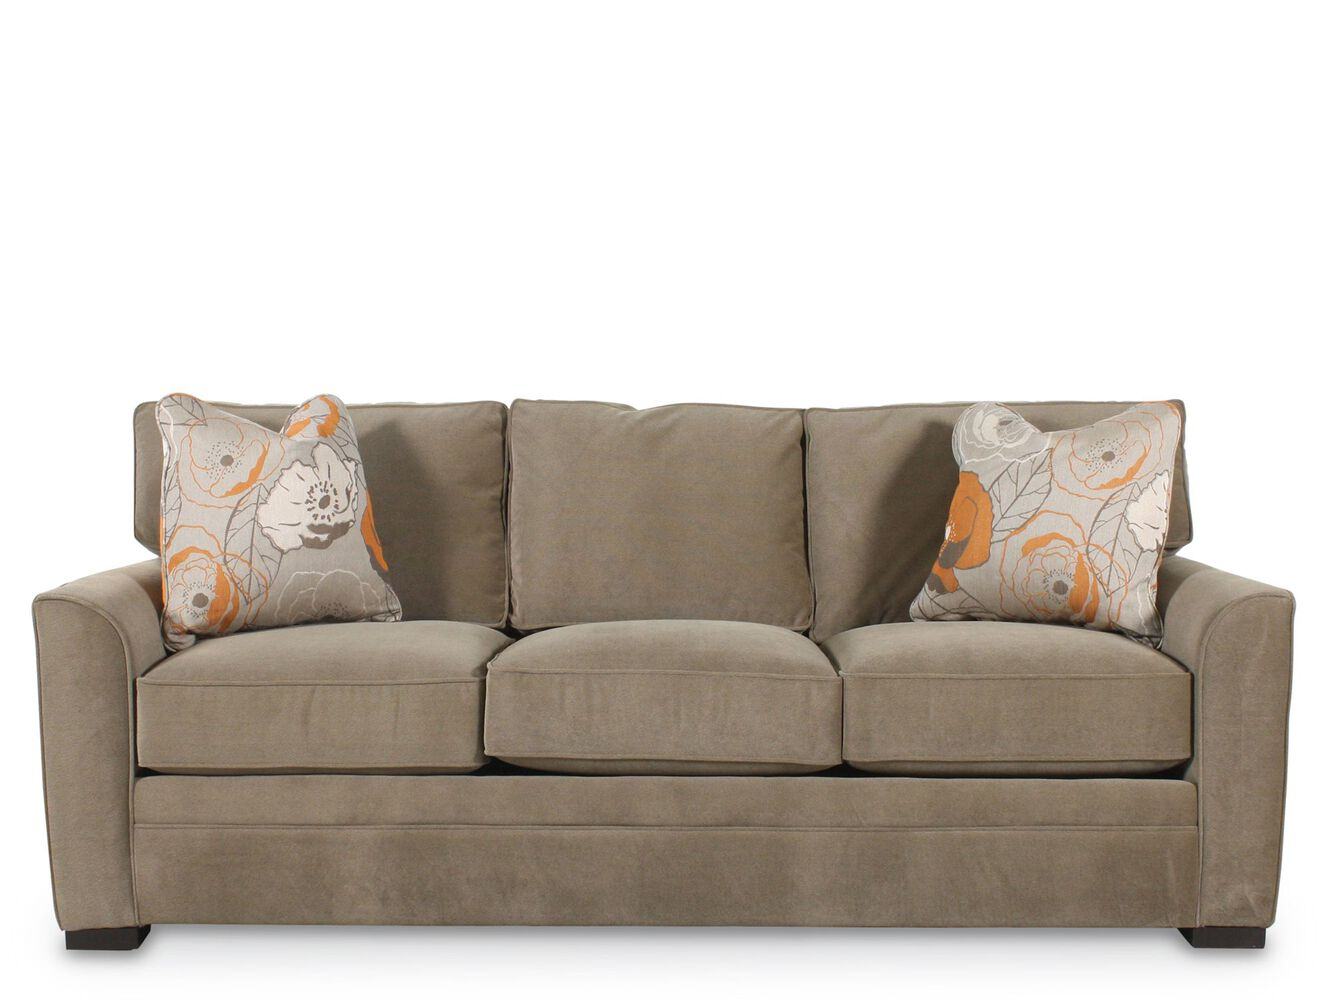 Lane Furniture Bedroom Sets Sofa Beds Sleepers Mathis Brothers Furniture Stores